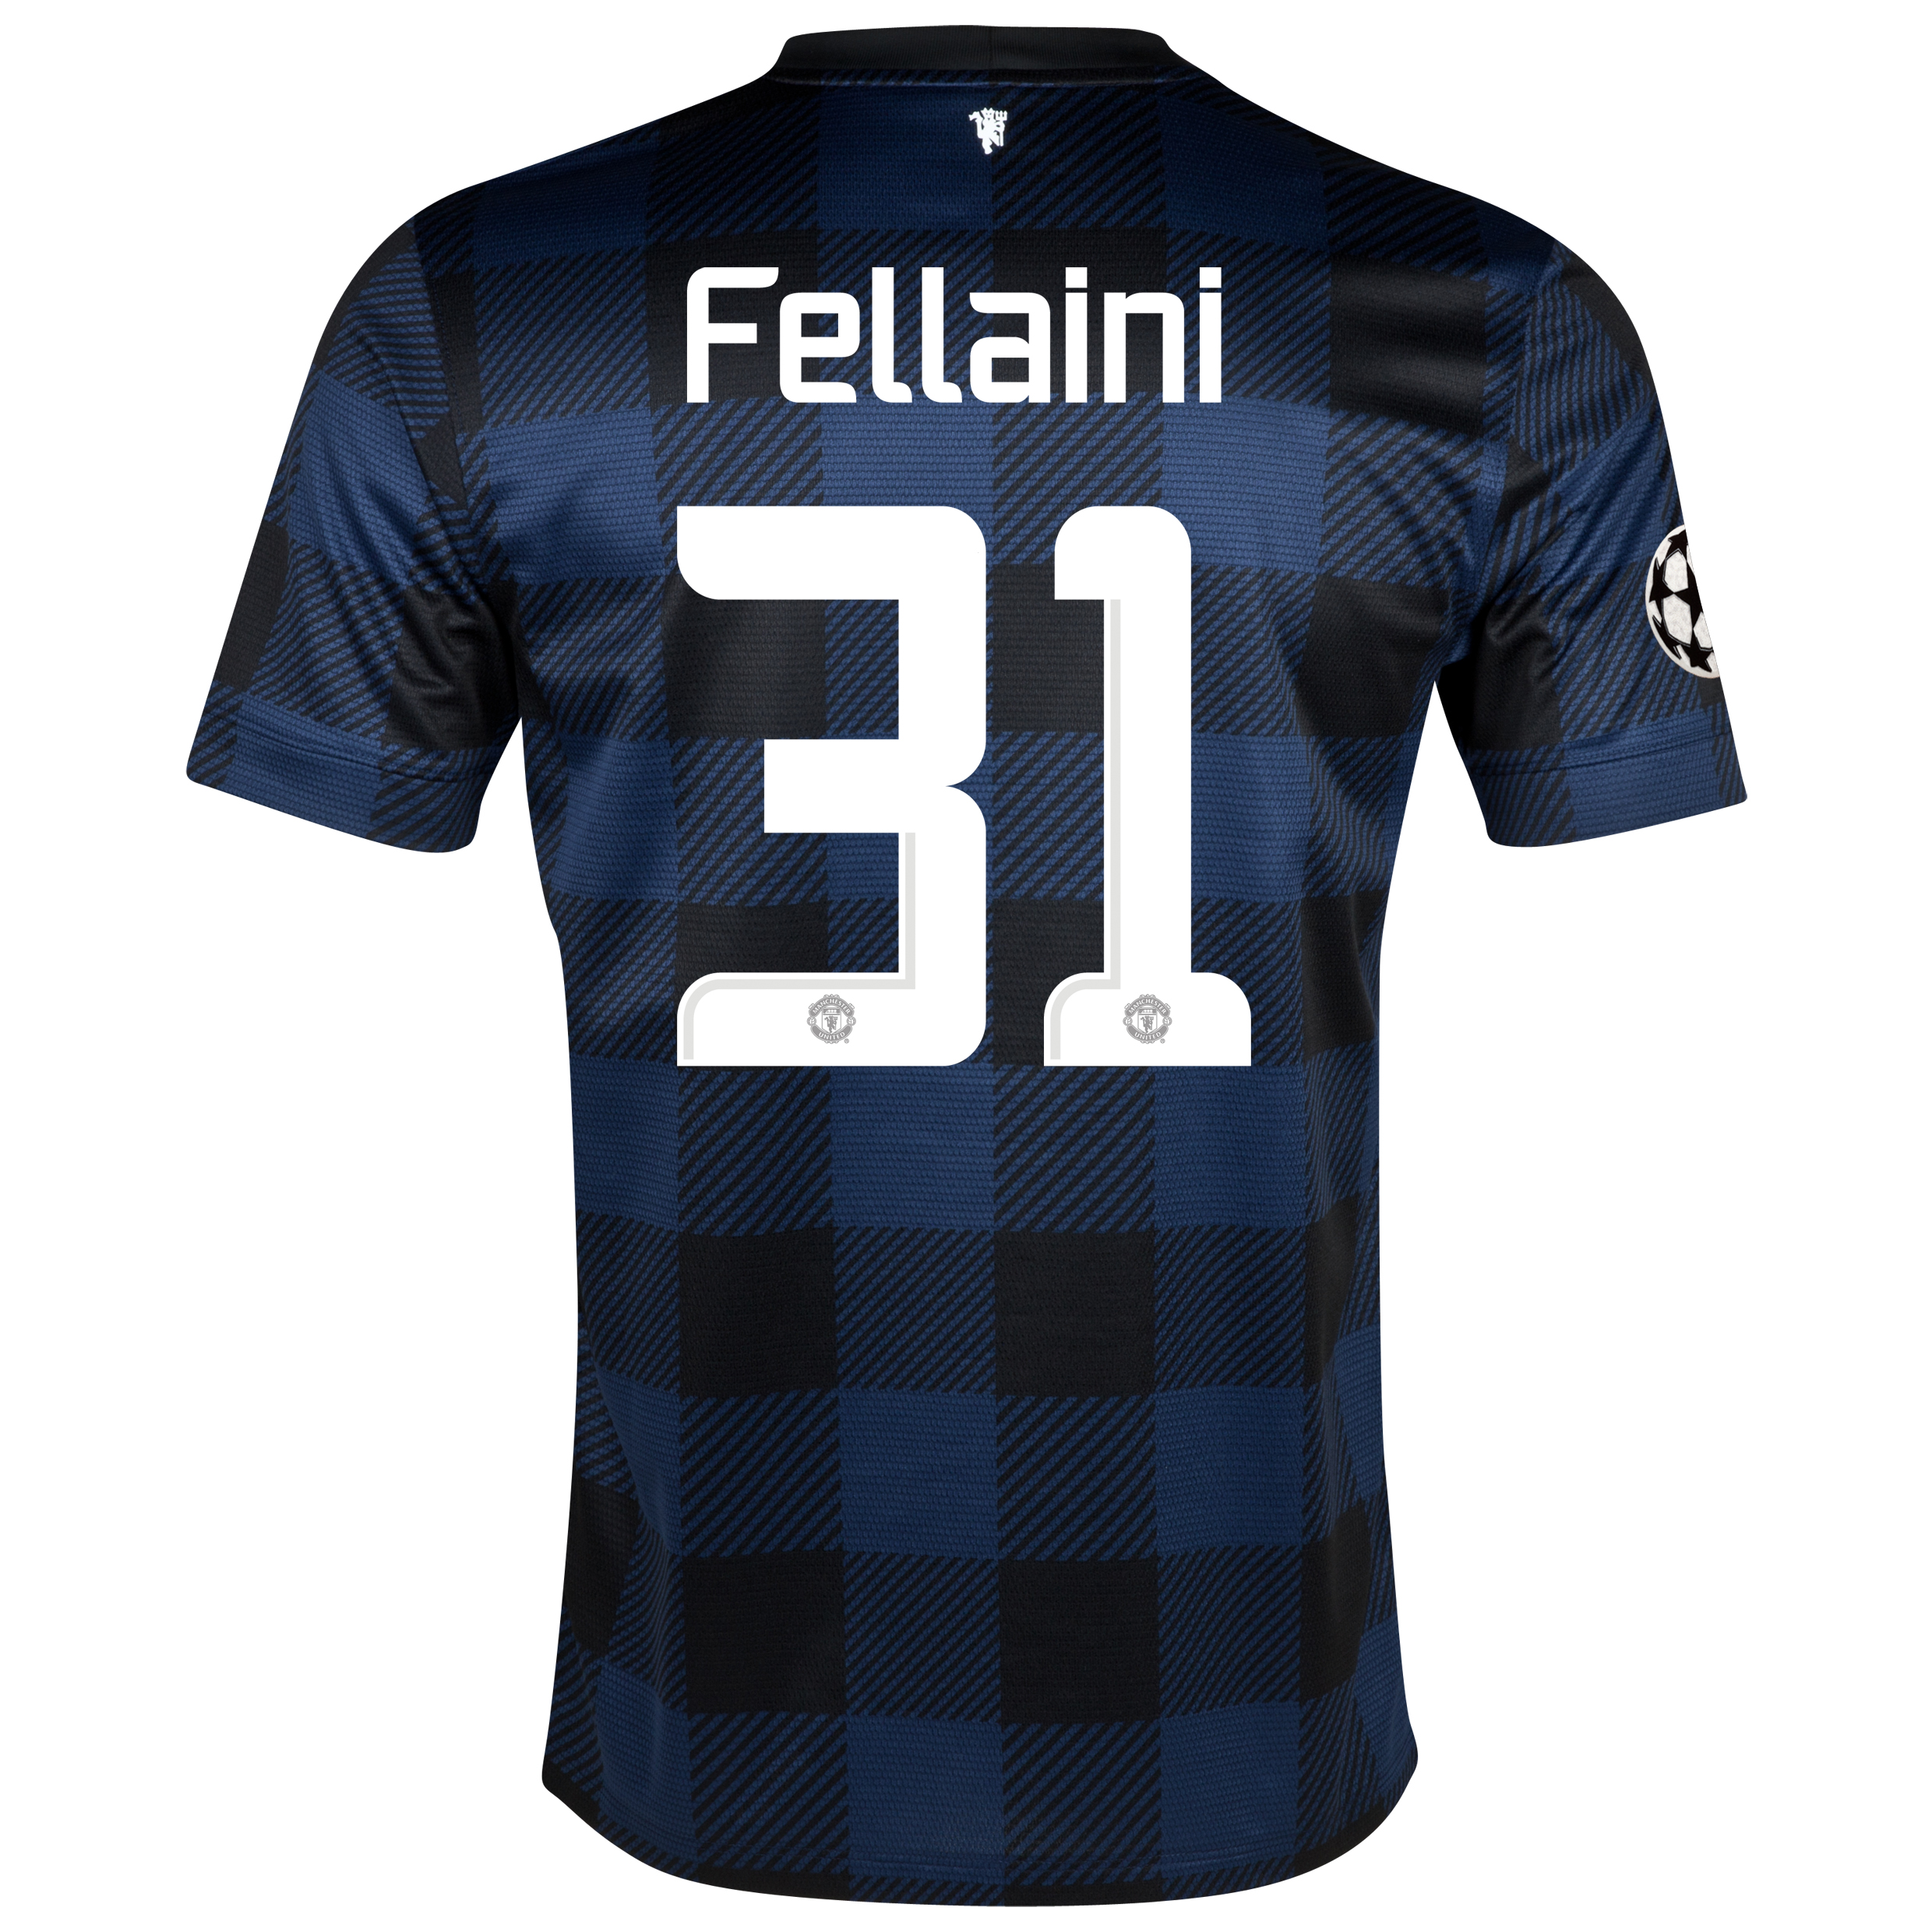 Manchester United UEFA Champions League Away Shirt 2013/14 - Kids with Fellaini 31 printing